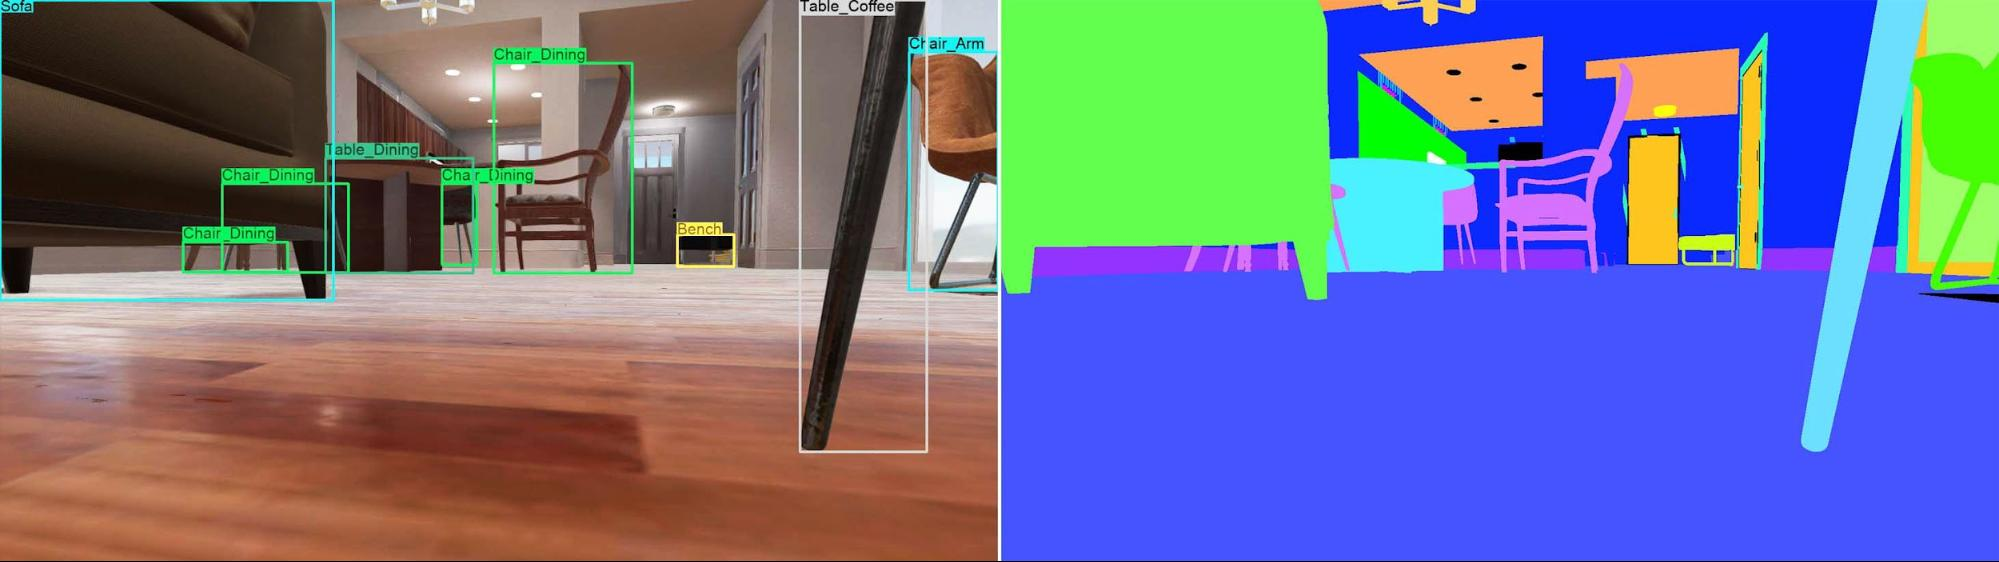 Simulating the point of view of a smart vacuum cleaner. Left: 2D bounding boxes, Right: semantic segmentation